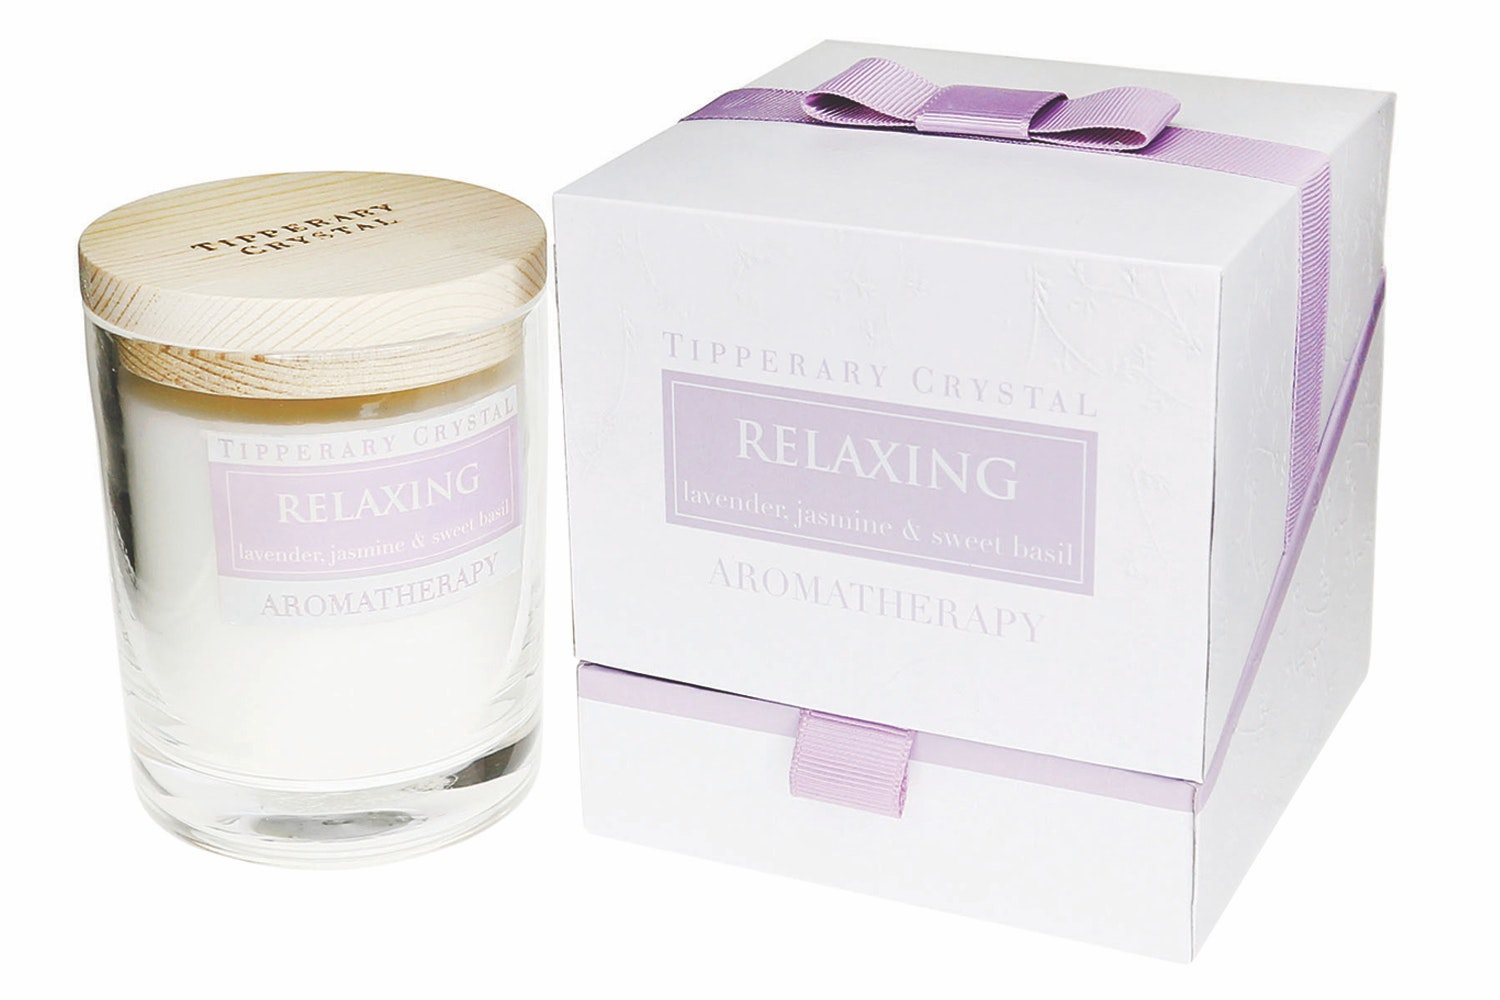 Tipperary Crystal|Relaxing Lavender Jasmine And Sweet Basil Candle